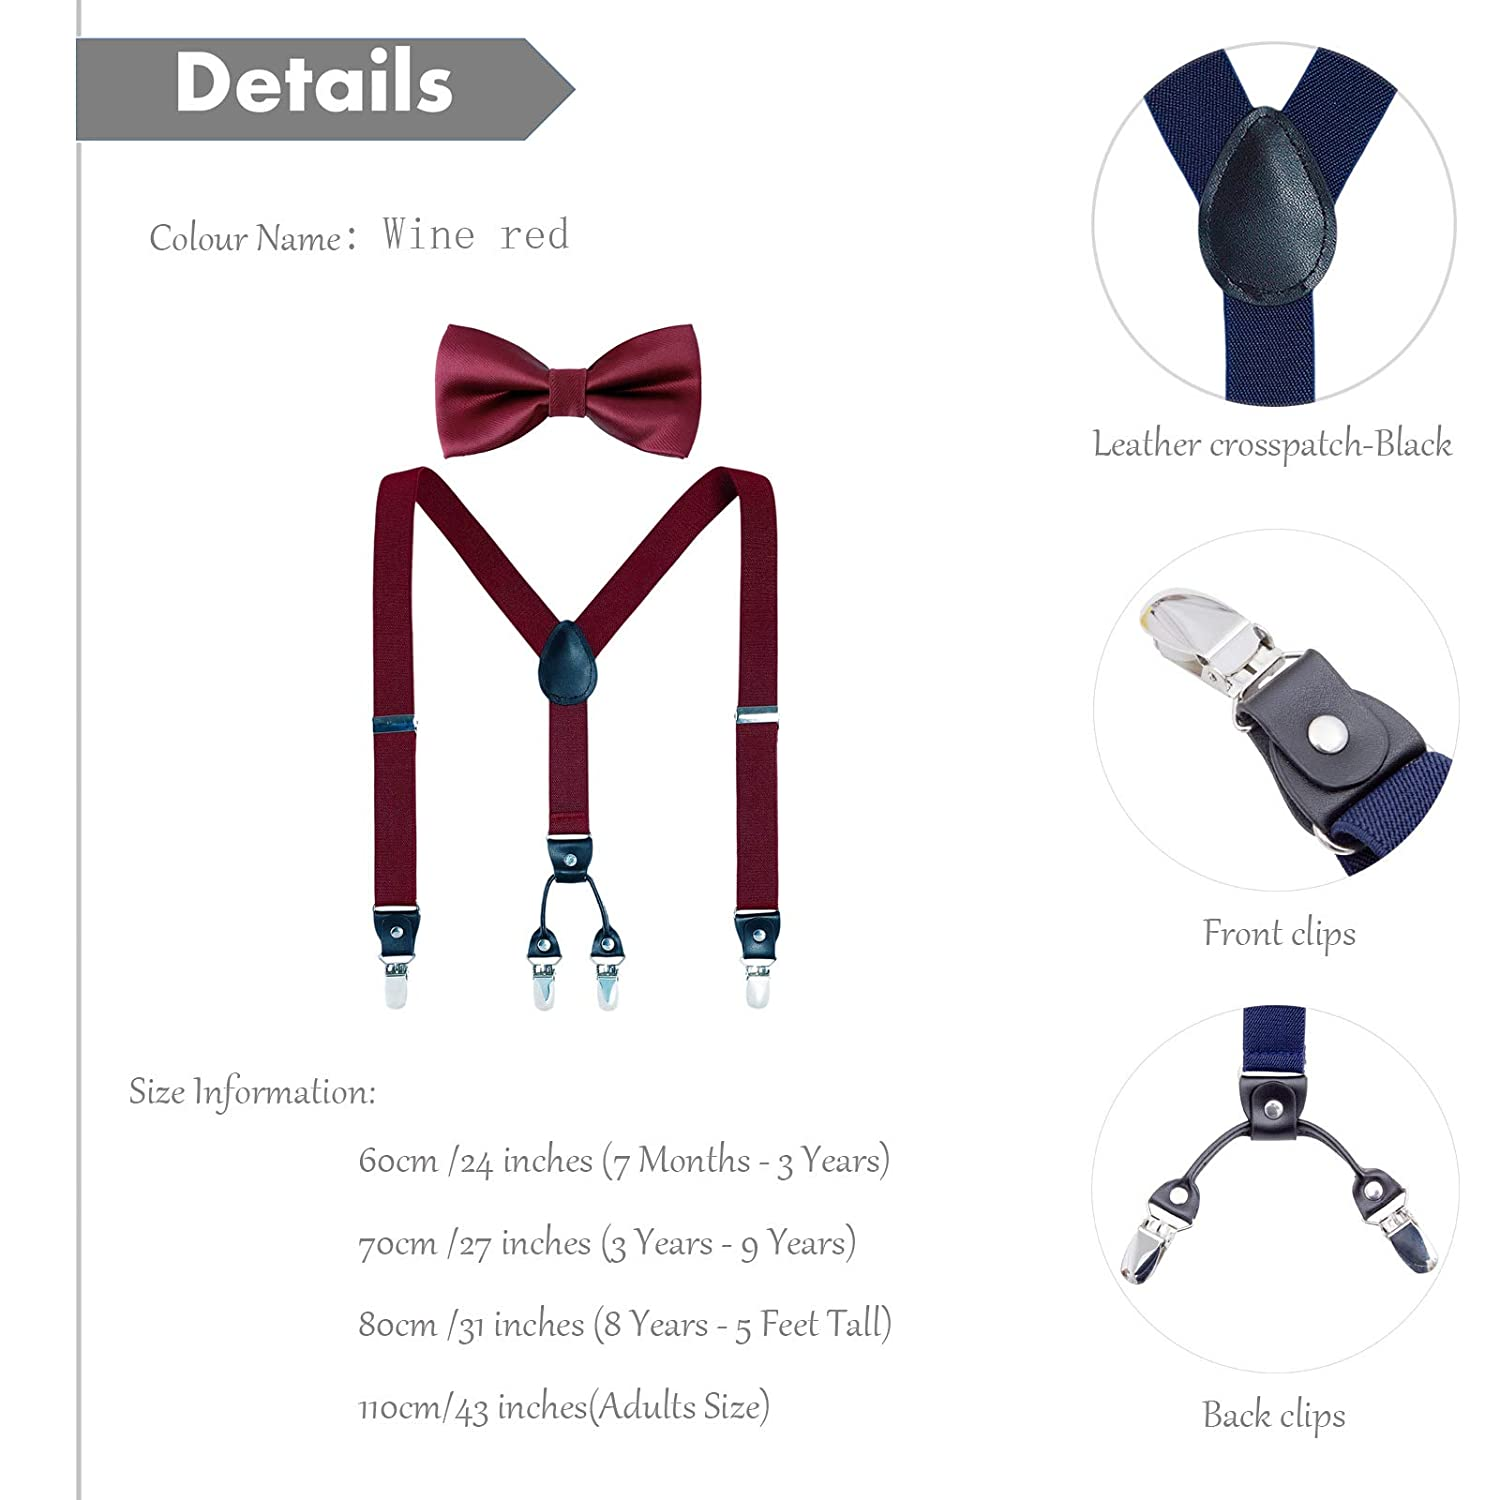 Light grey,27 inches 1 Inch,Black Leather 3 Years - 9 Years Y Shape Elastic Adjustable Suspender with 4 Strong Clips Men Boy Suspenders Bow Tie Set